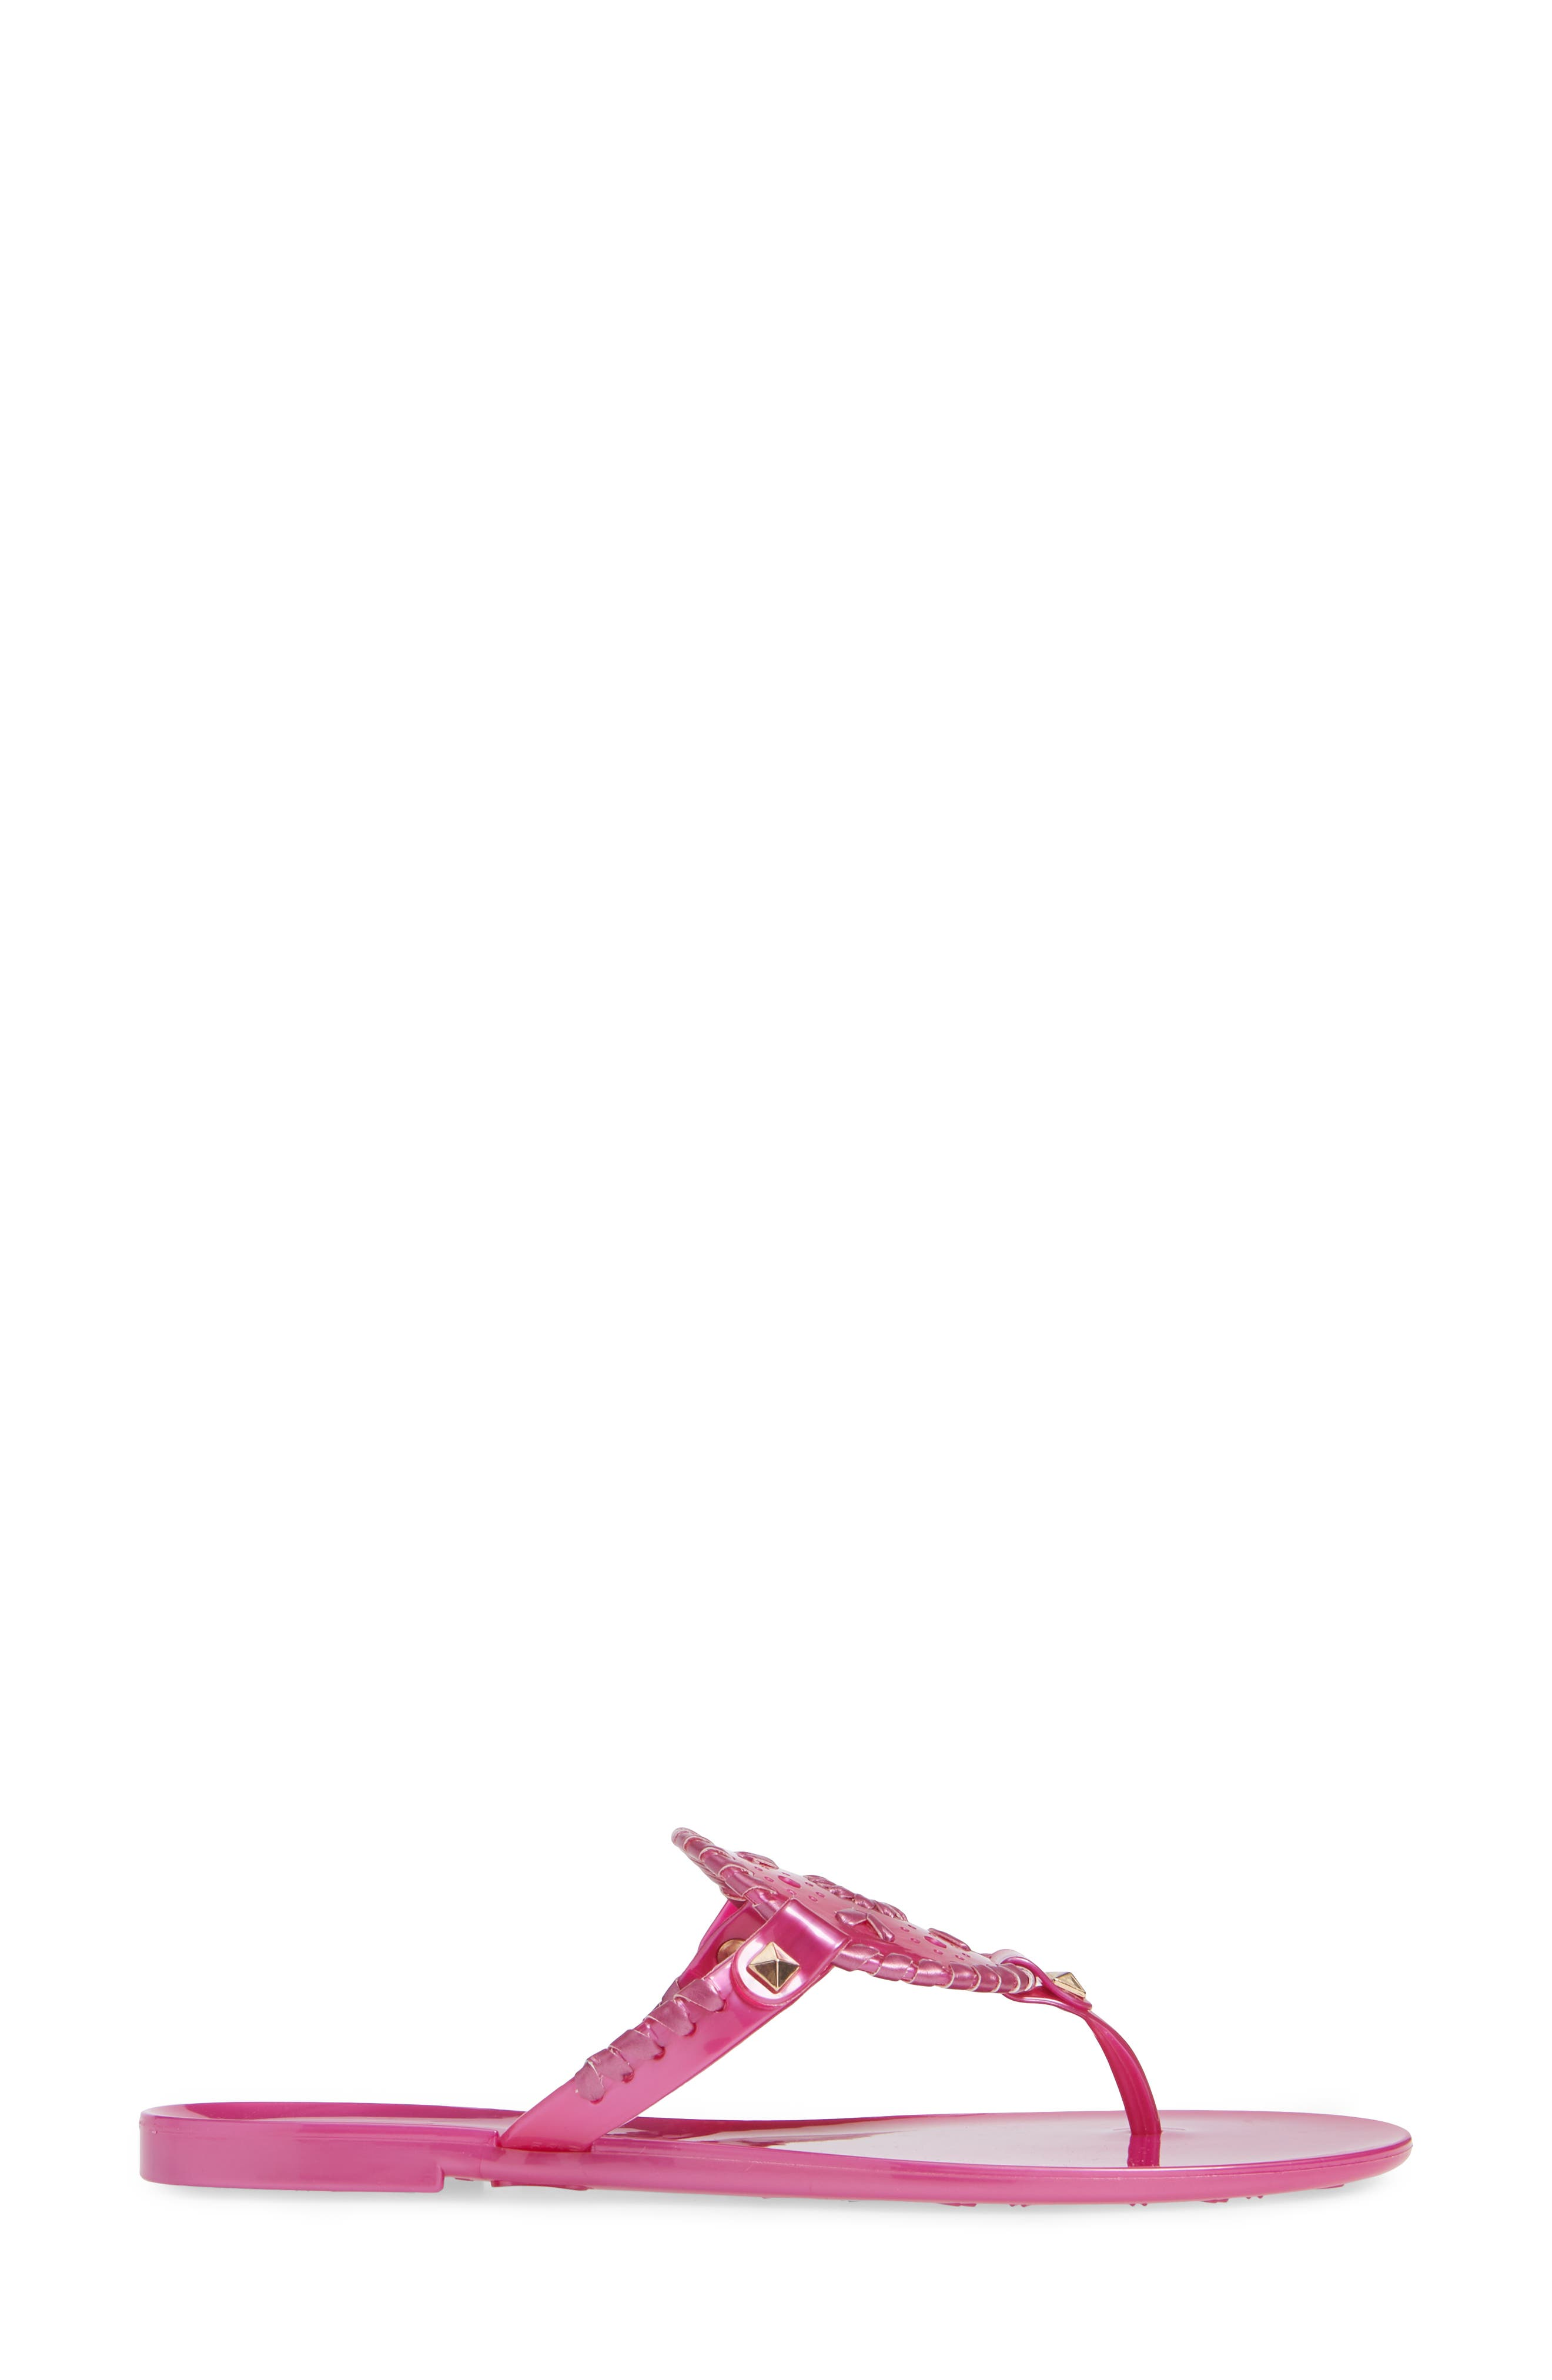 'Georgica' Jelly Flip Flop,                             Alternate thumbnail 3, color,                             BRIGHT PINK